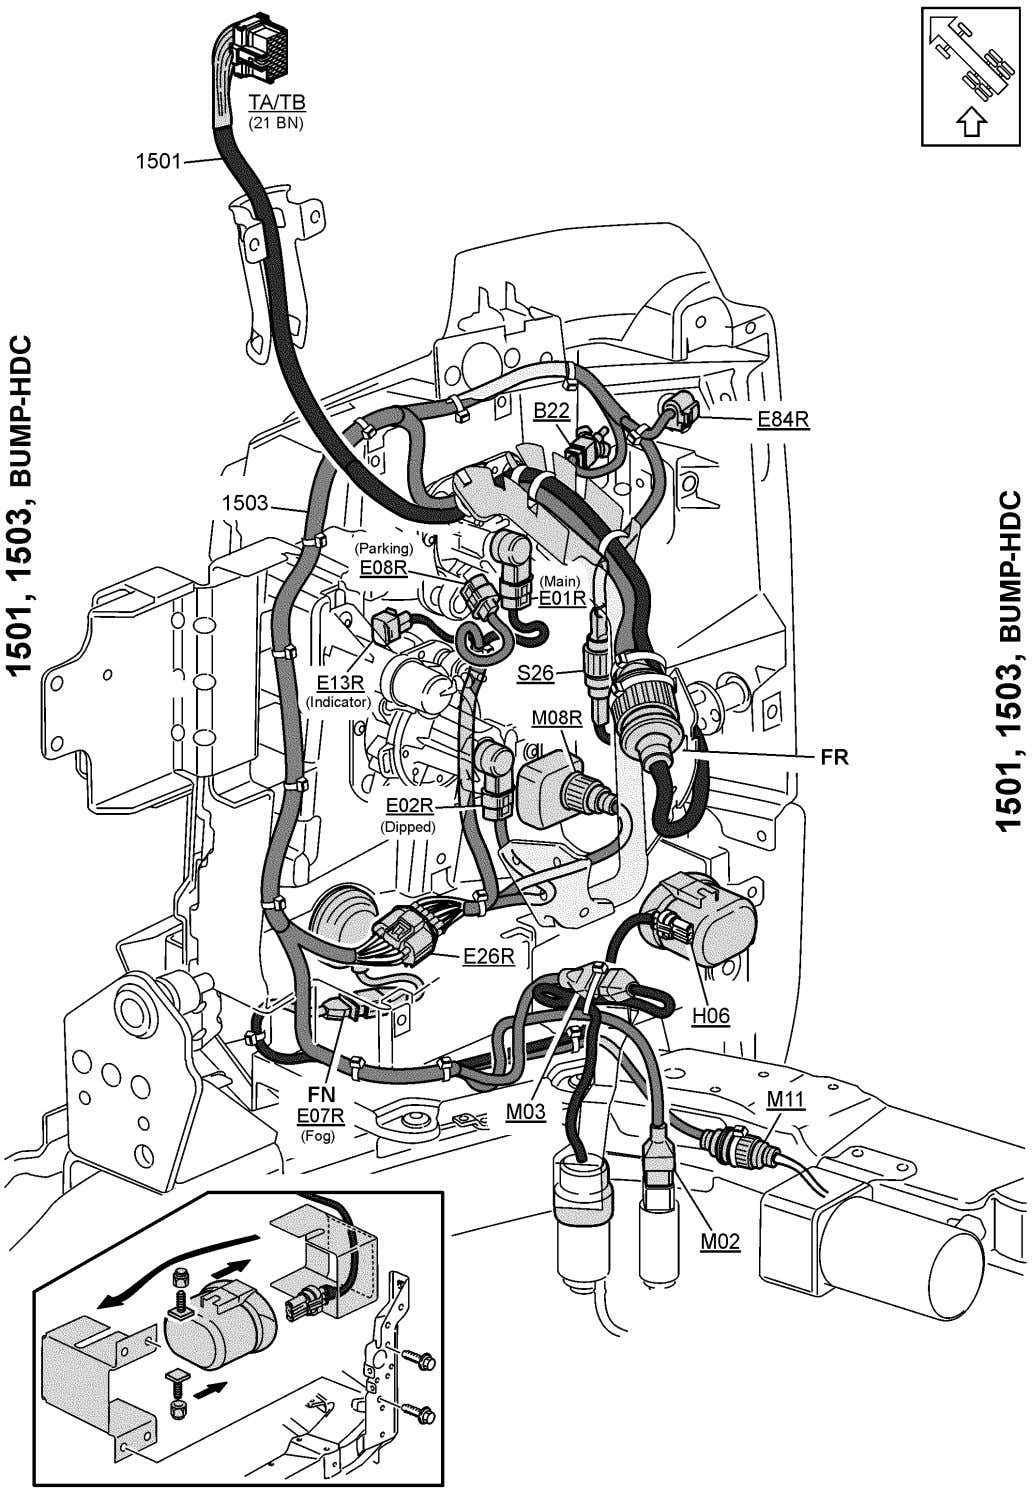 T3057745 Wiring diagram Page 217 (298)